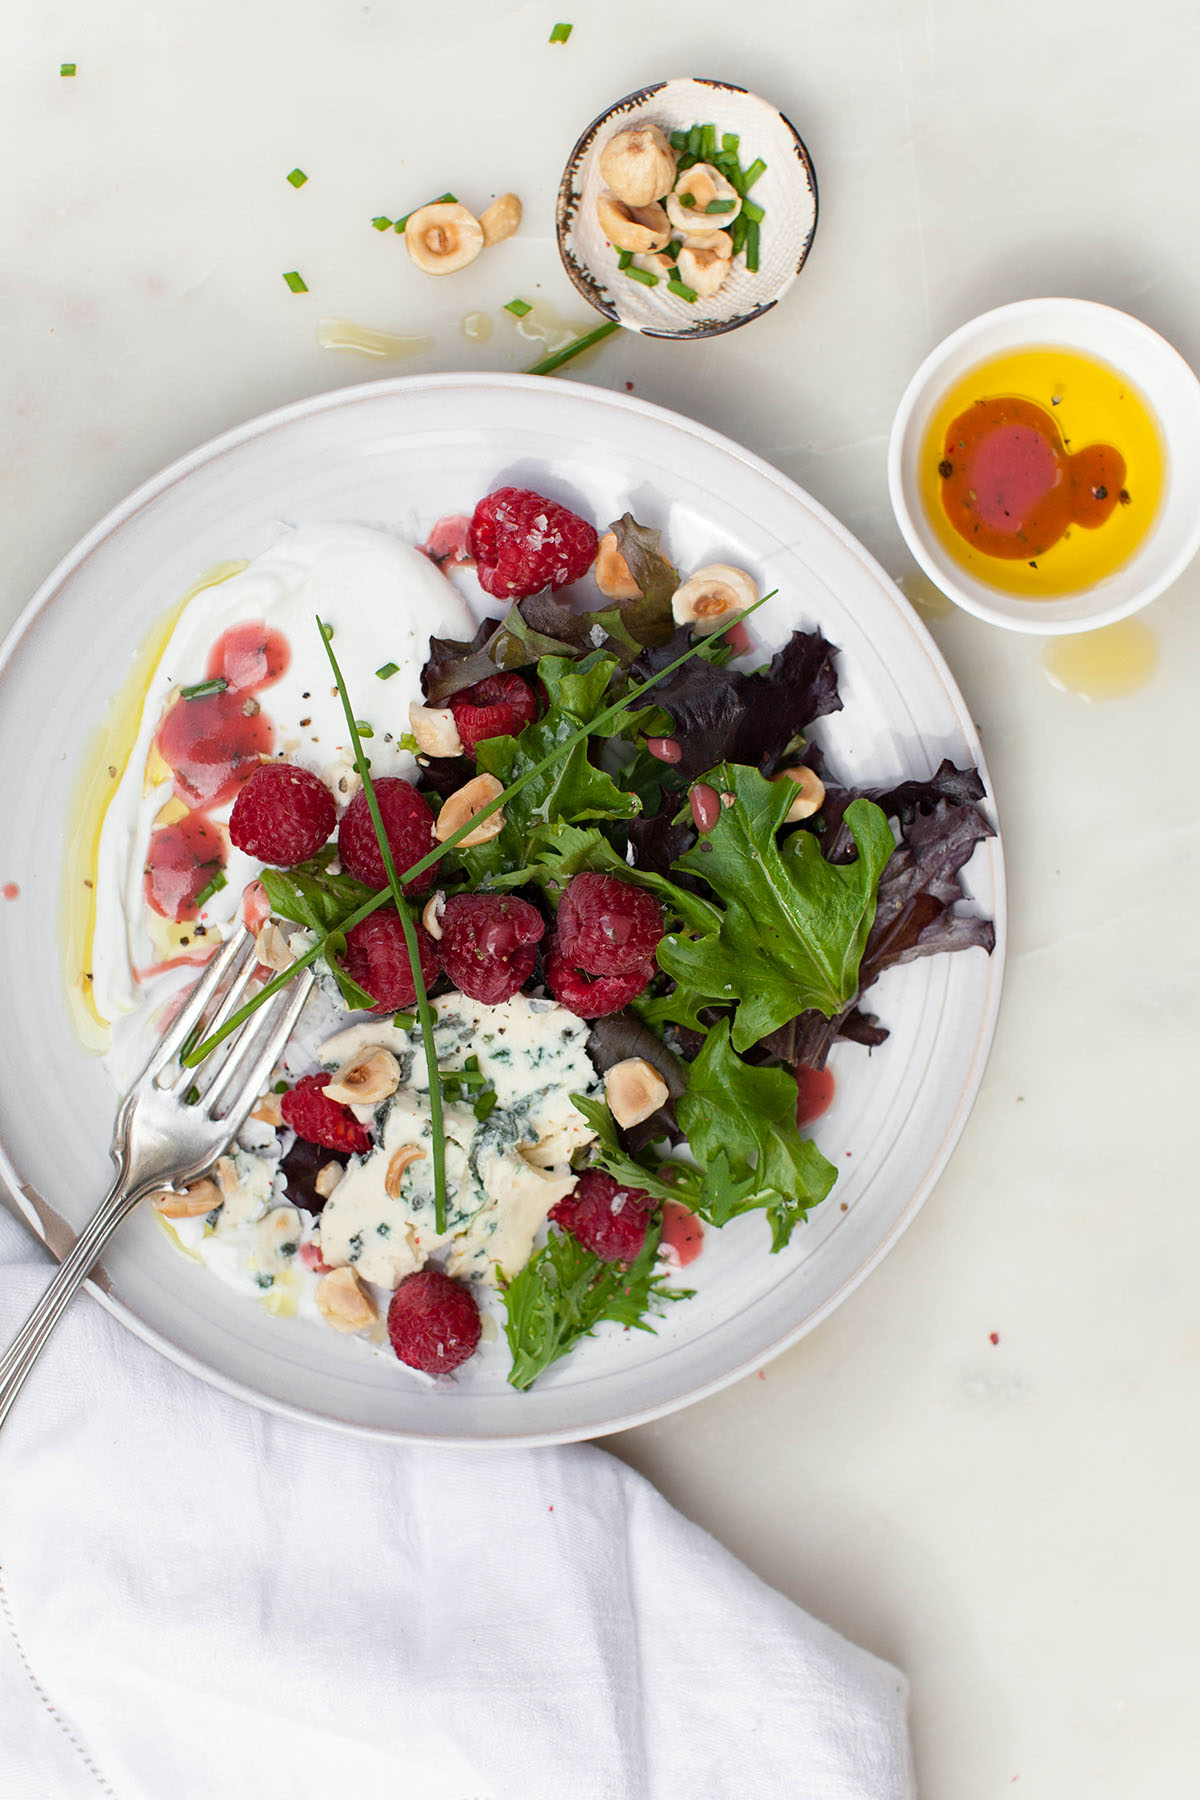 Yogurt Salad with Raspberry Vinaigrette